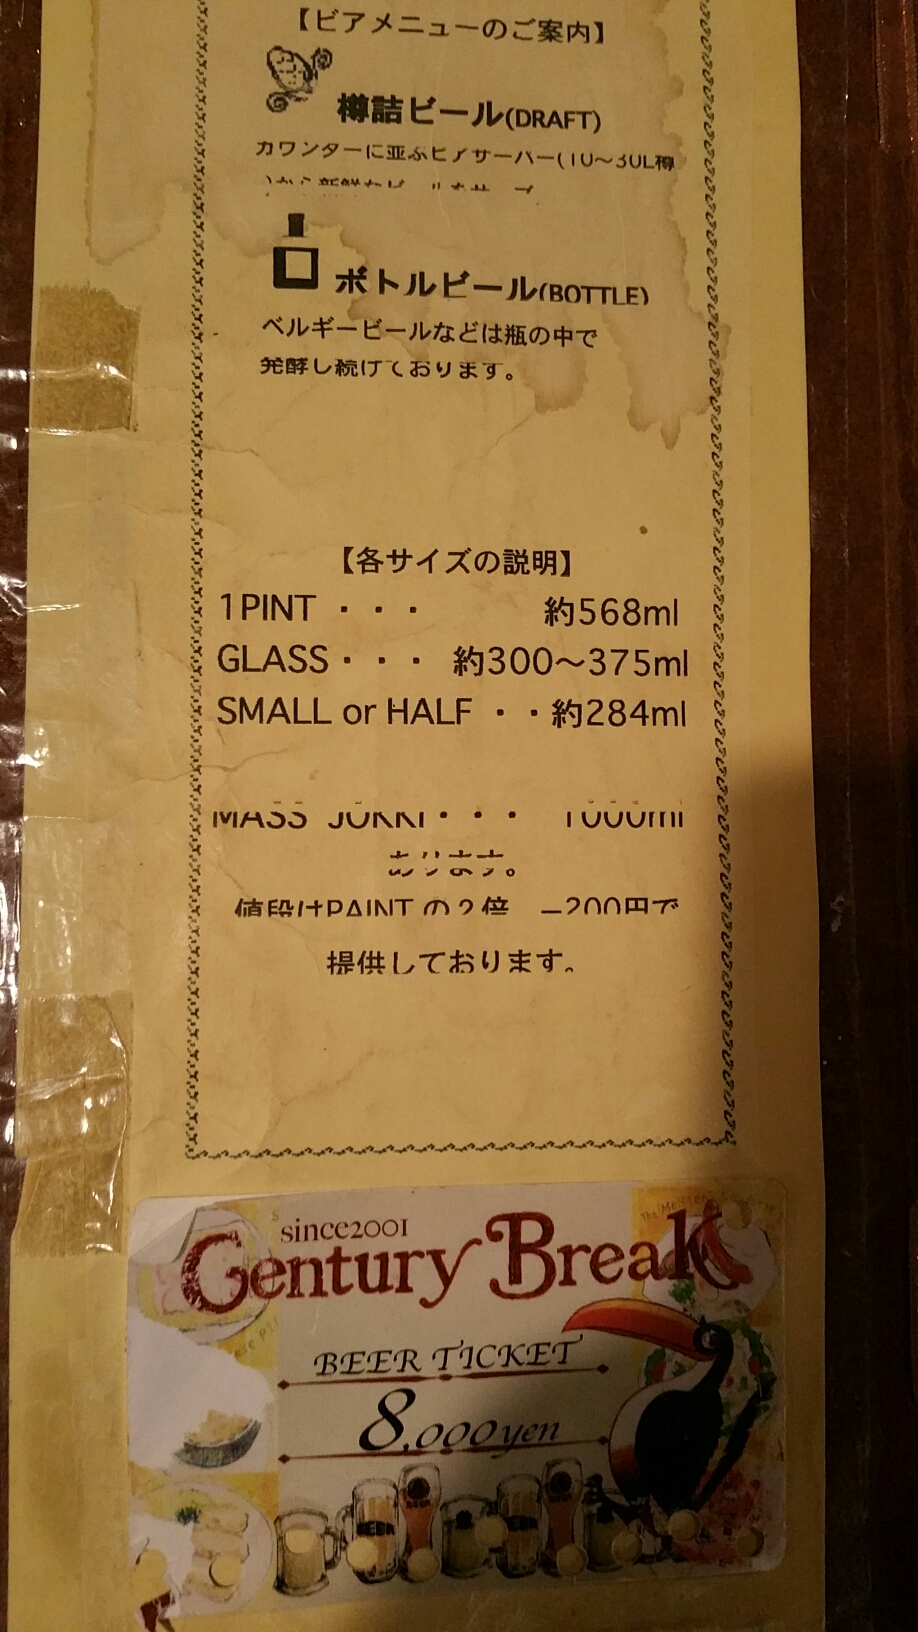 Century Break Menu 3